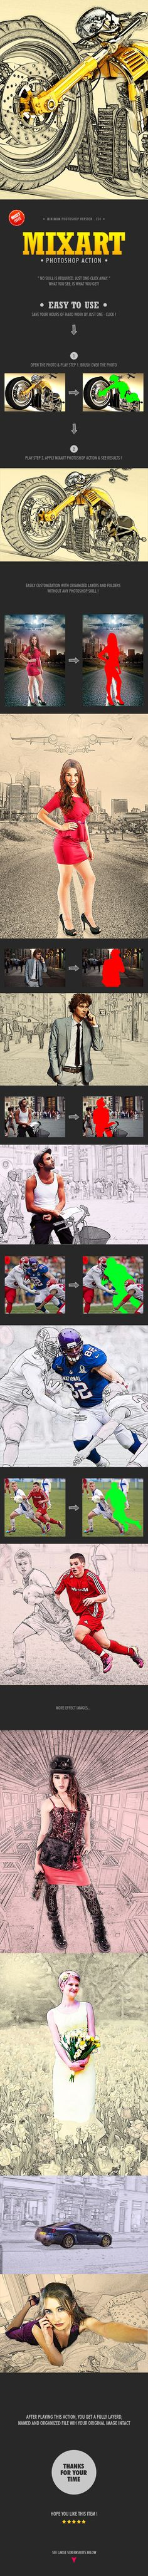 Mixart Photoshop Action - Photo Effects Actions